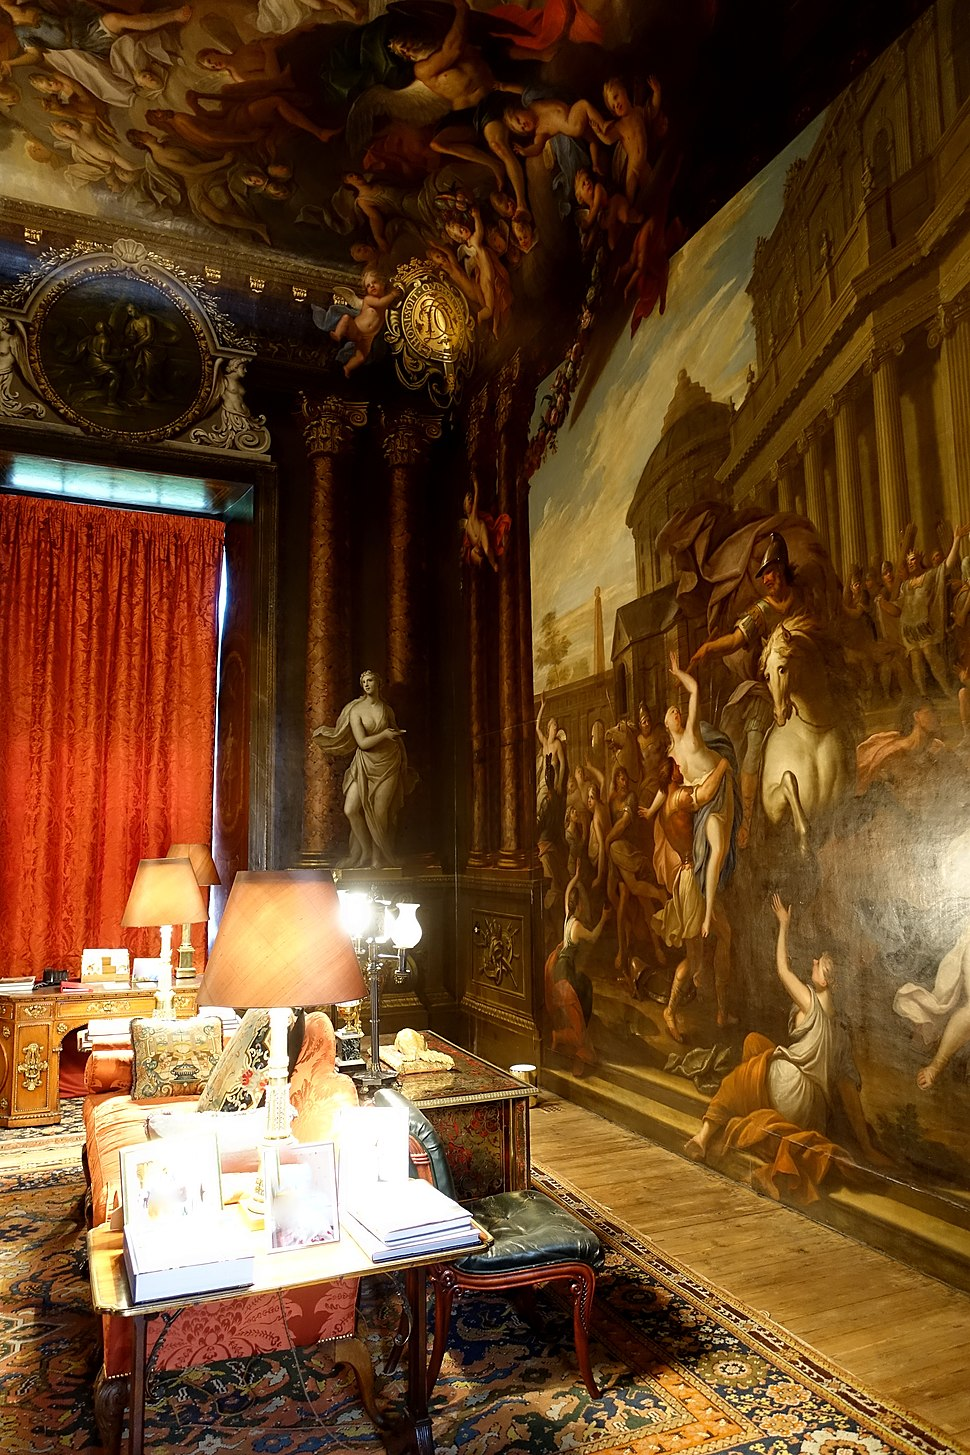 Rape of the Sabines, by James Thornhill, 1690s - Painted Antechamber, Chatsworth House - Derbyshire, England - DSC03298